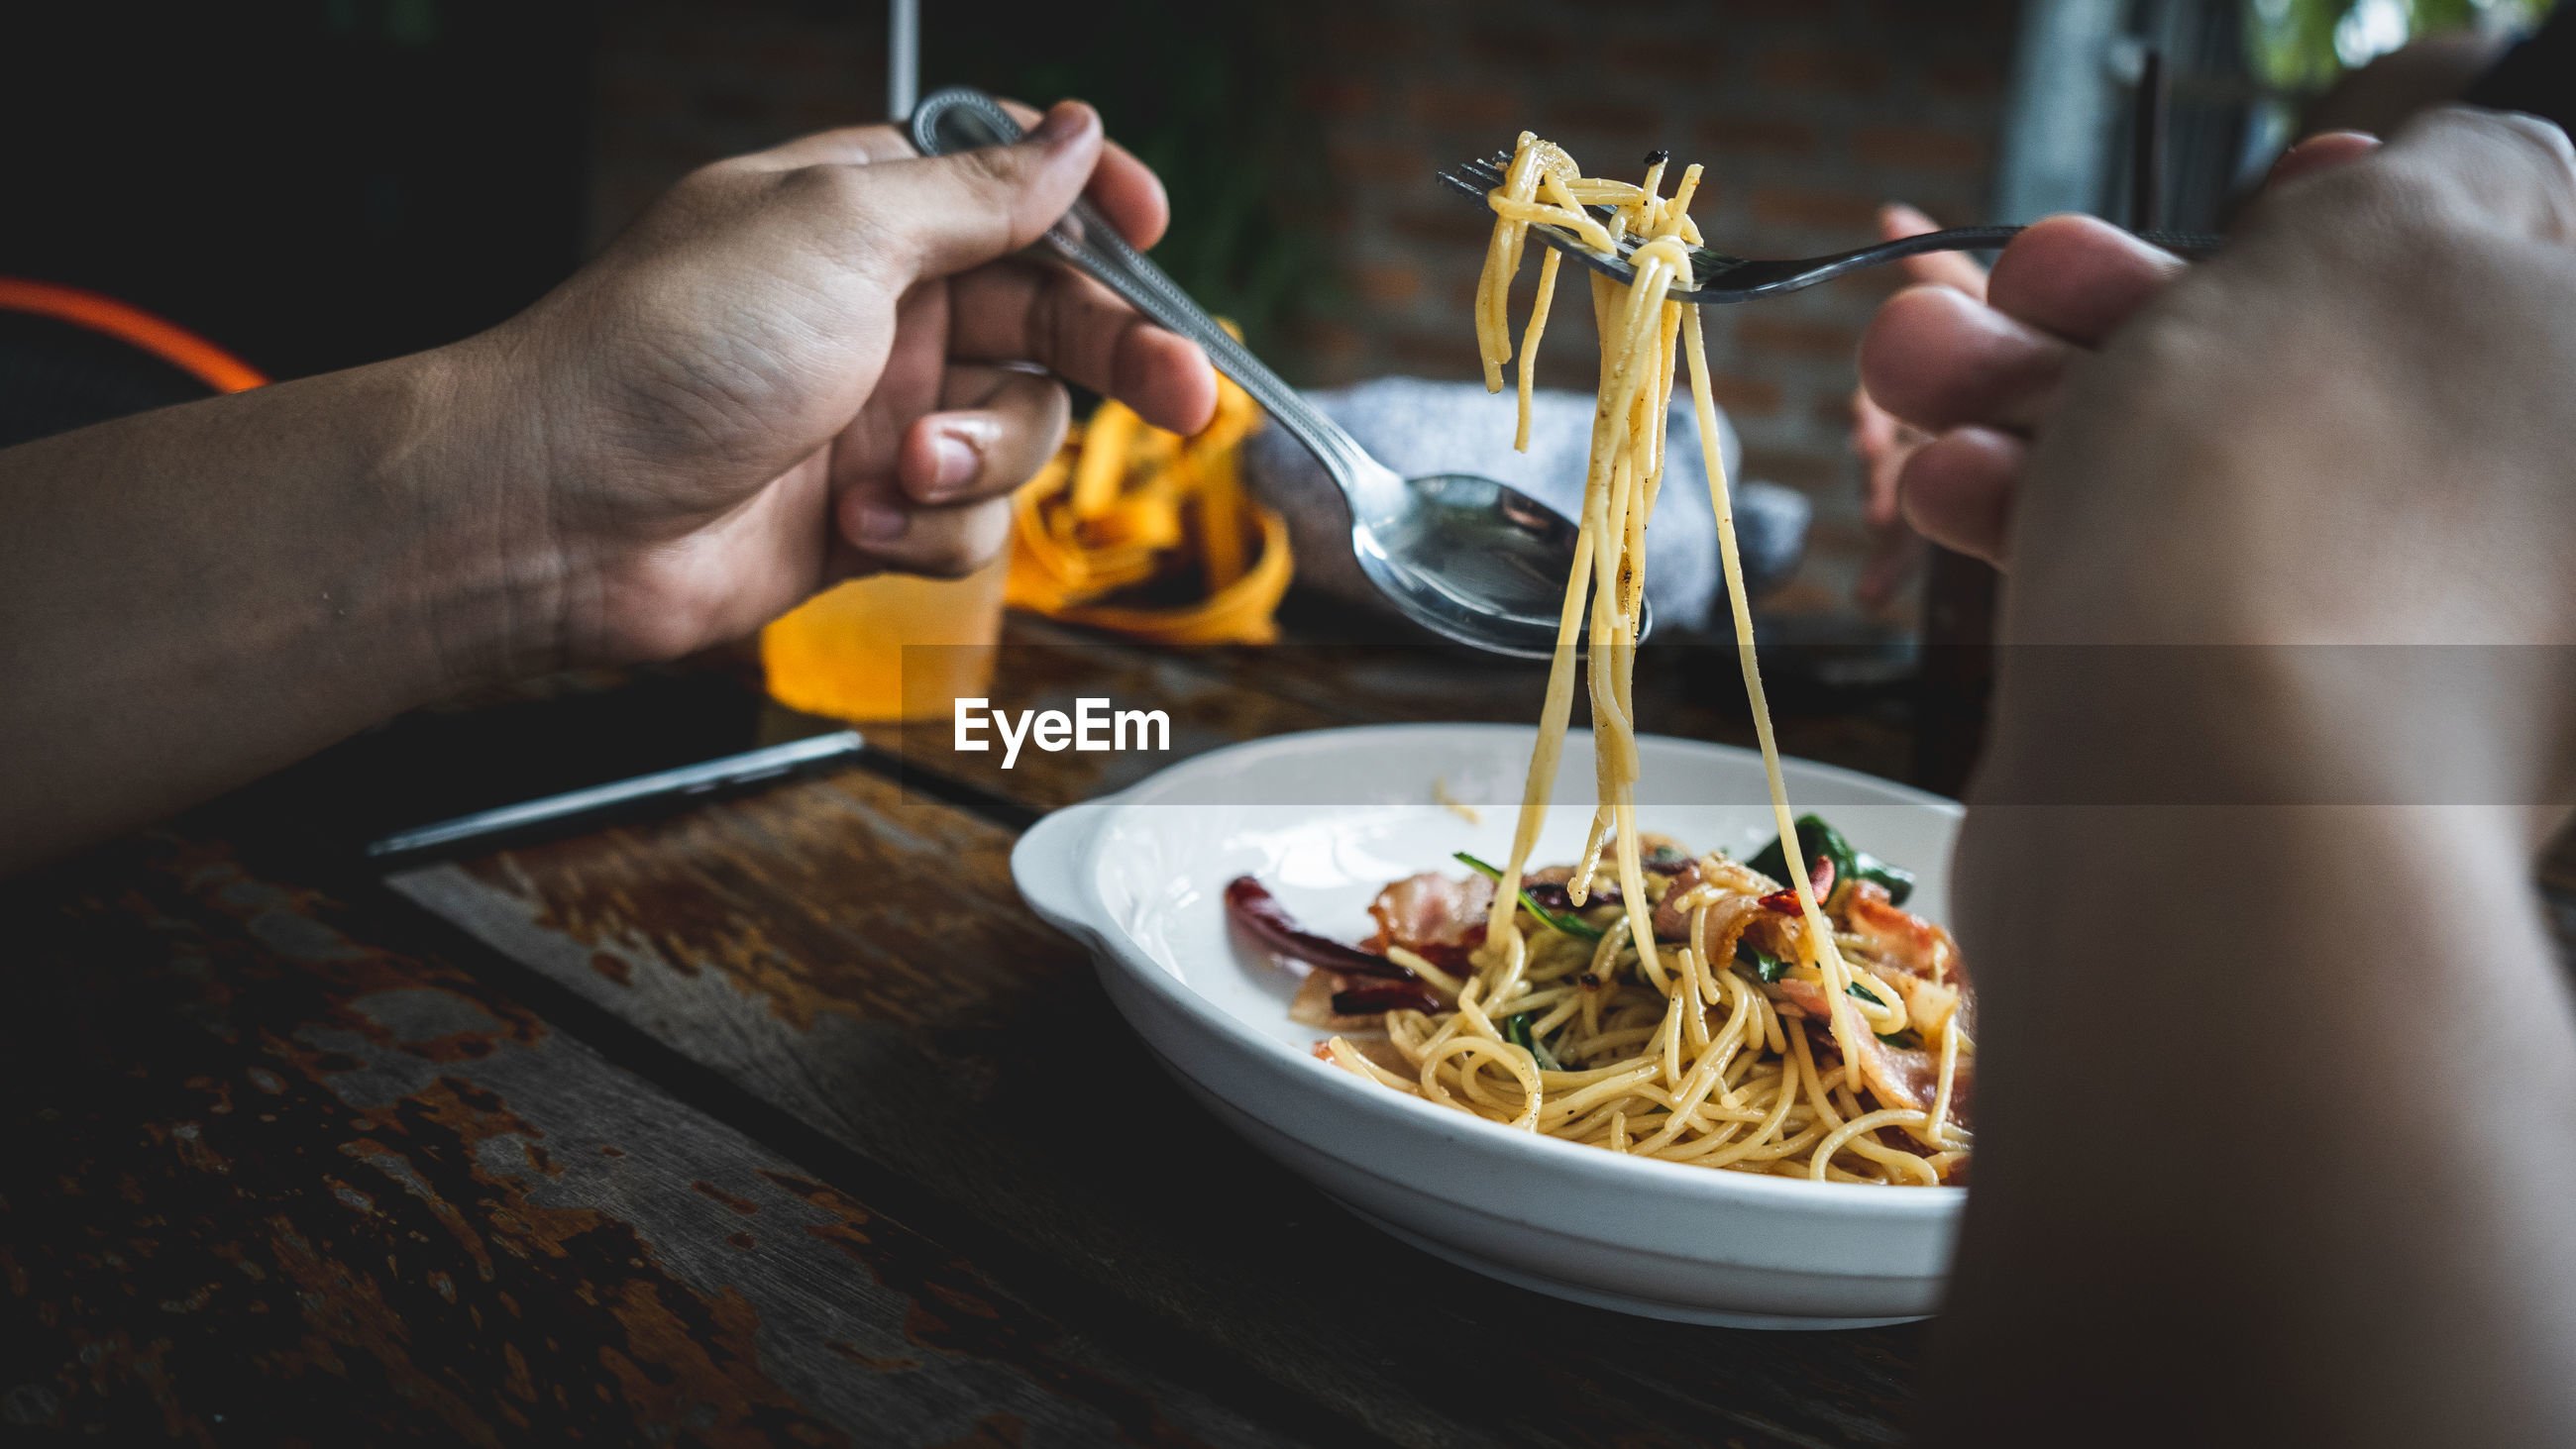 Midsection of person eating noodles on table